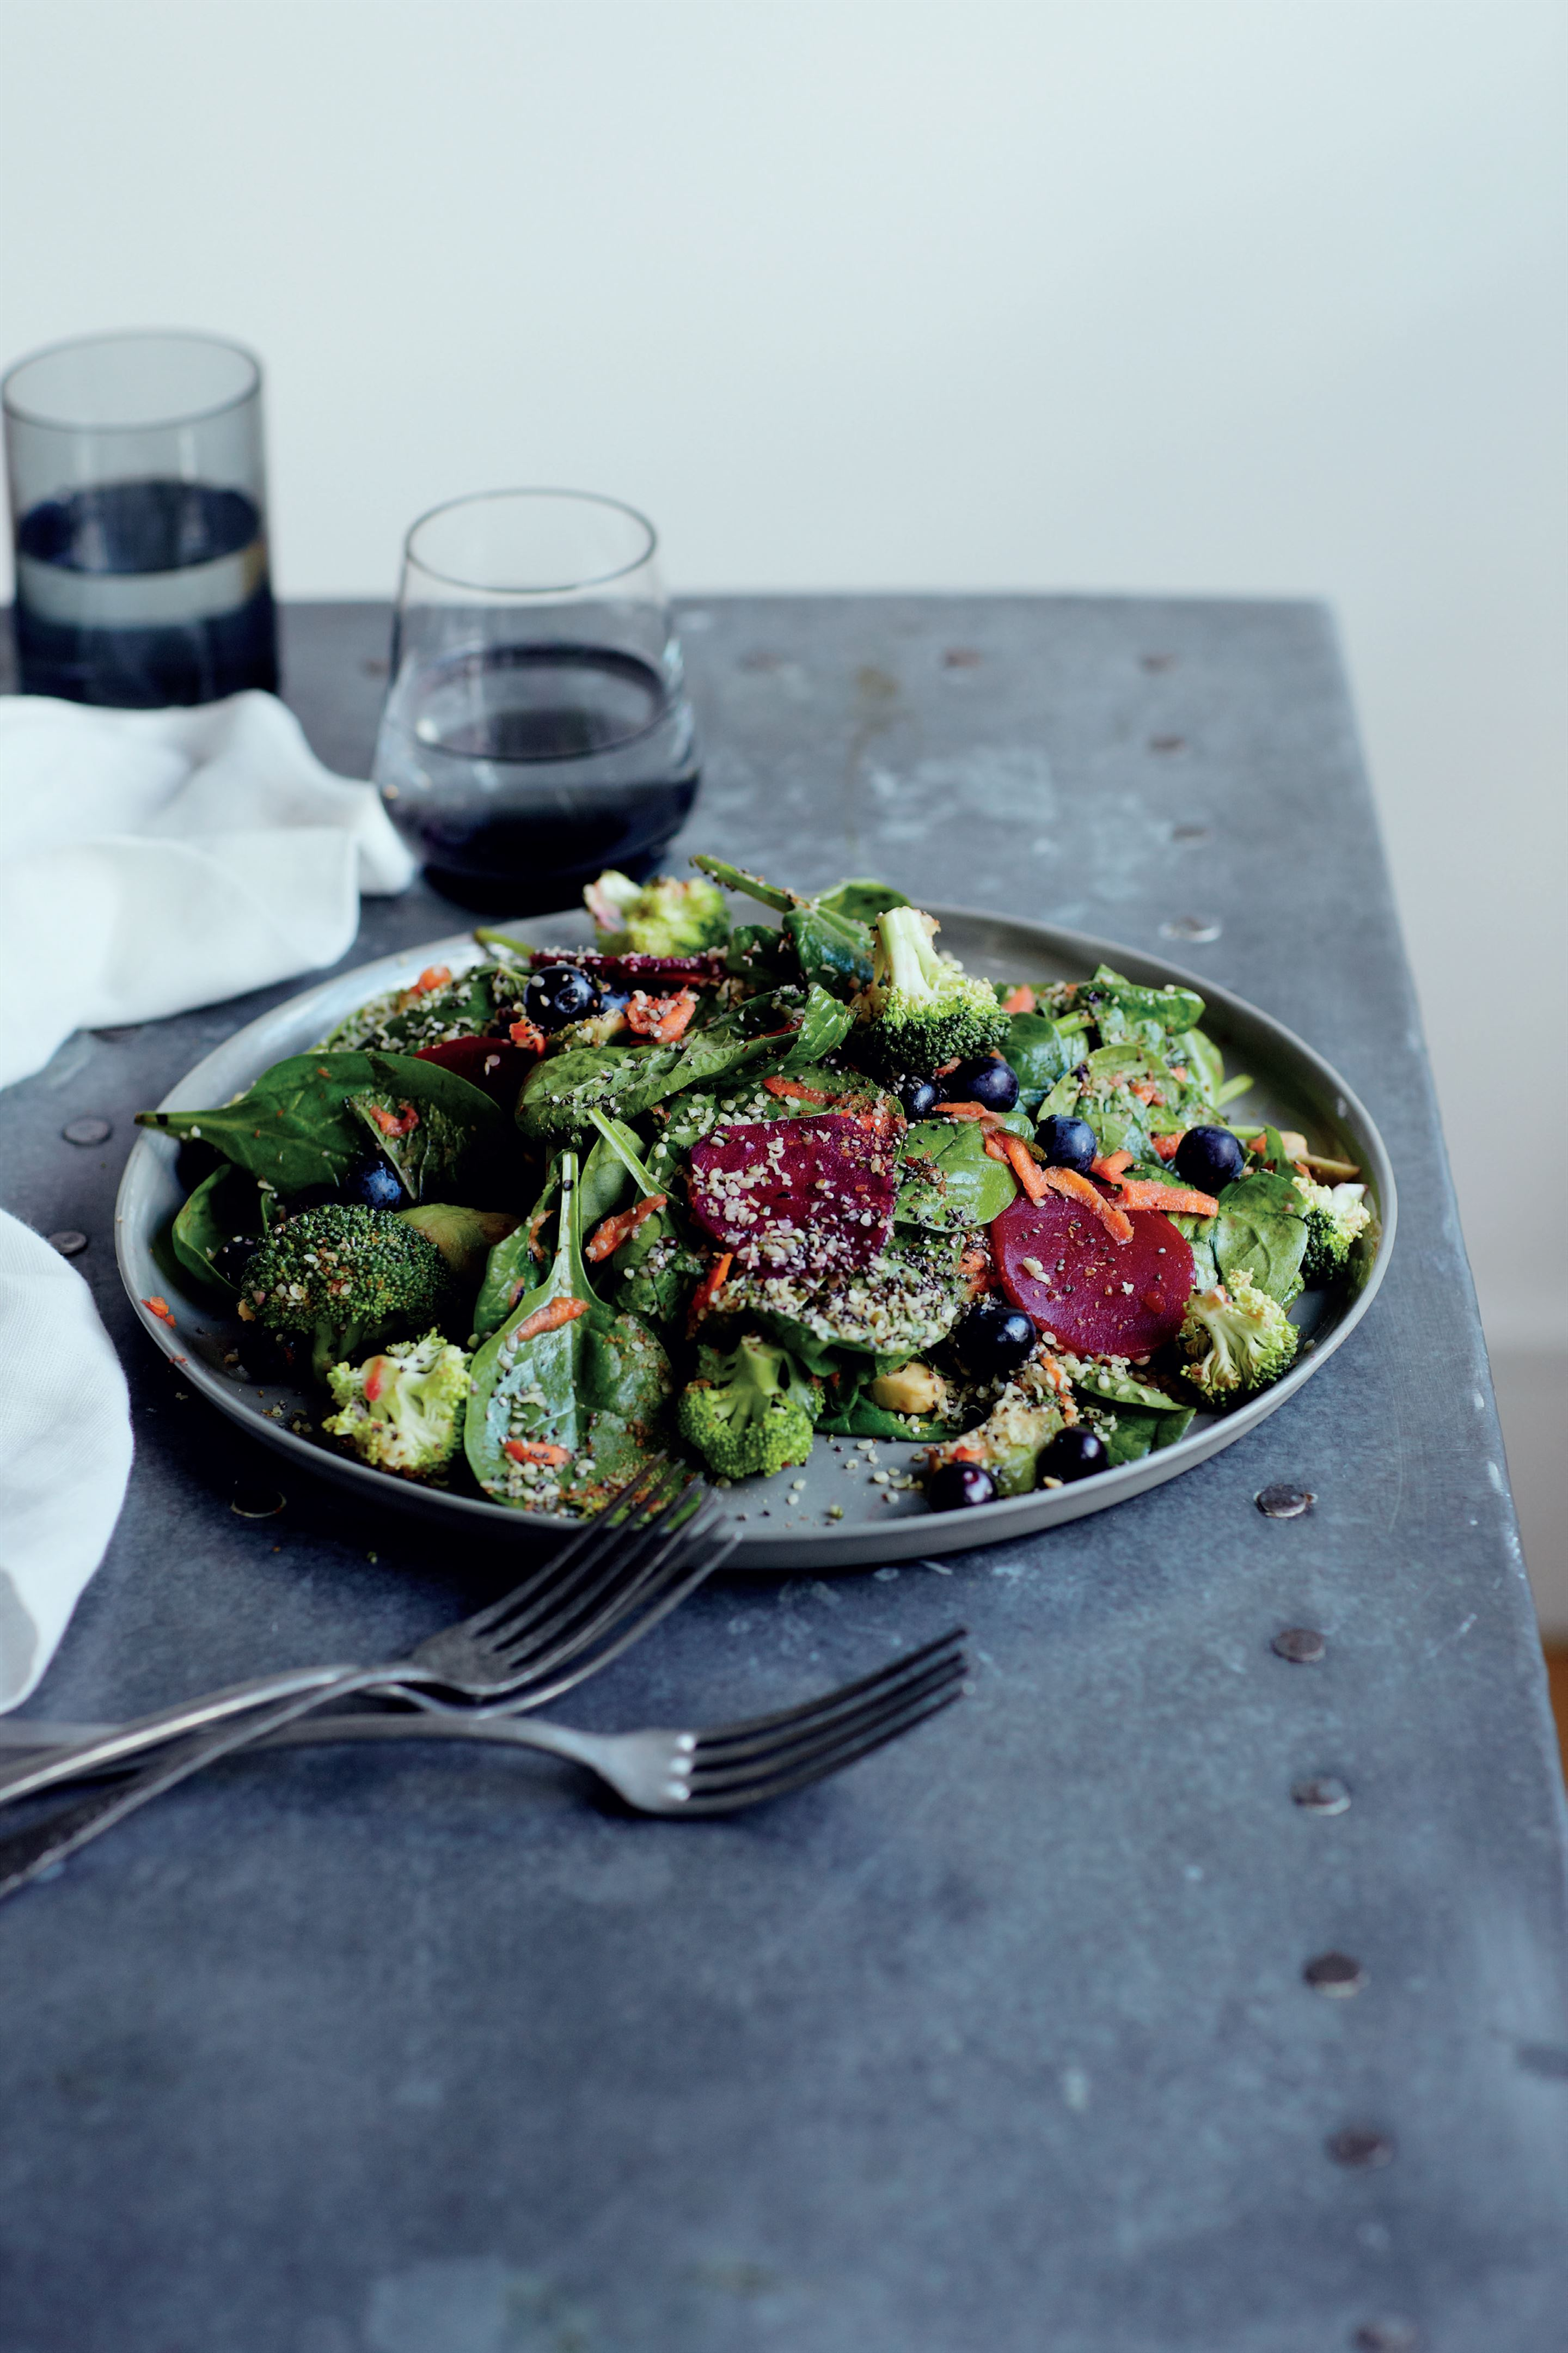 Ultimate superfood salad with hemp and blueberries